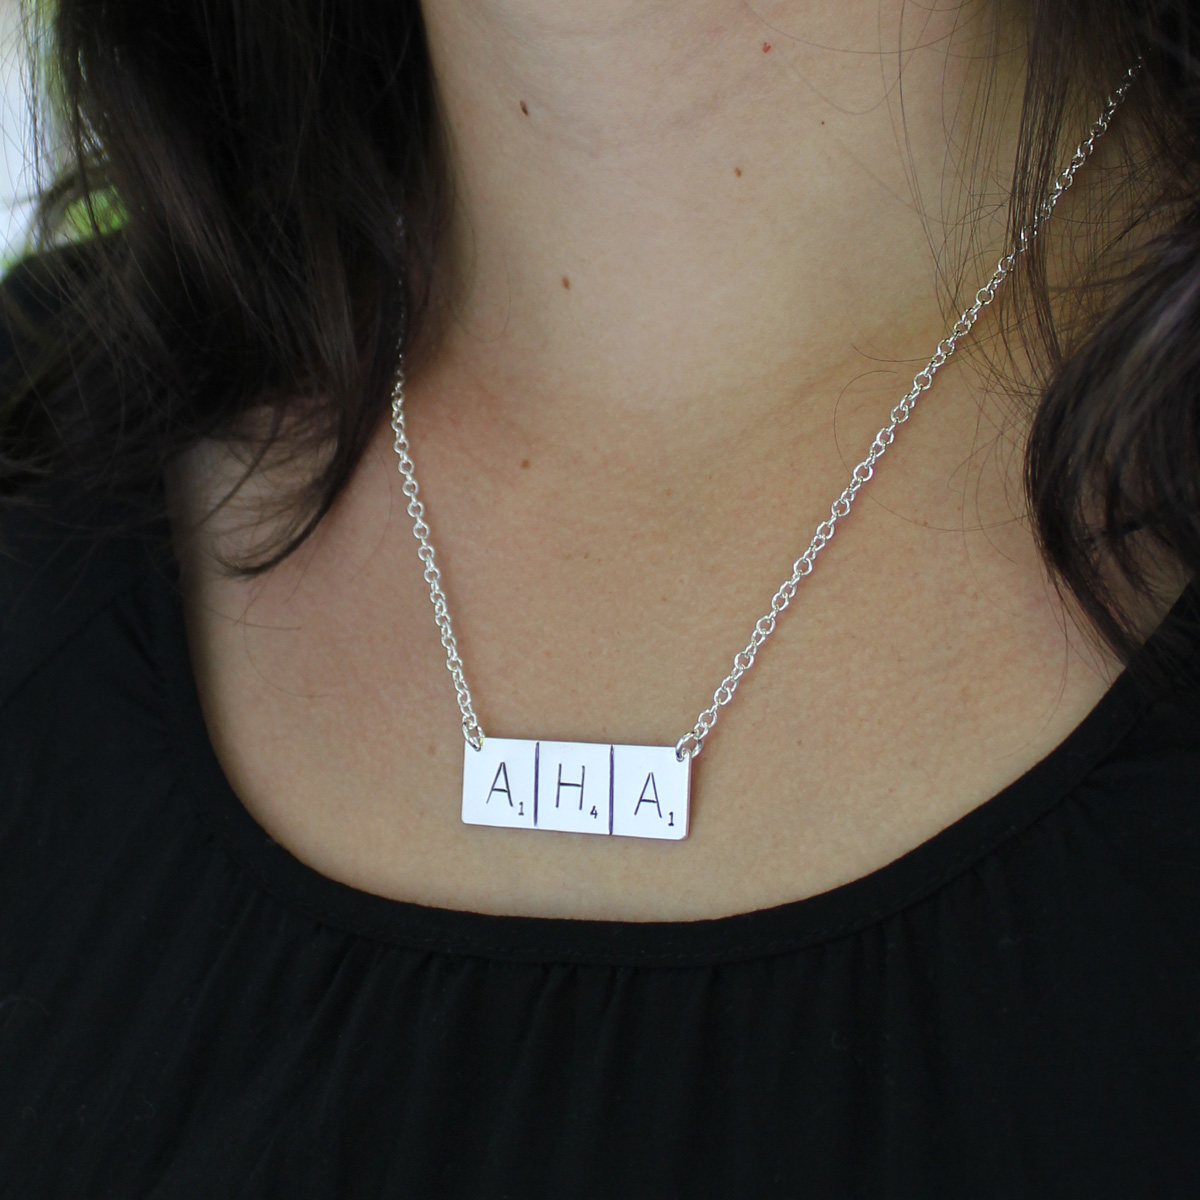 Scrabble Inspired Hand Stamped and Personalized Word Necklace On